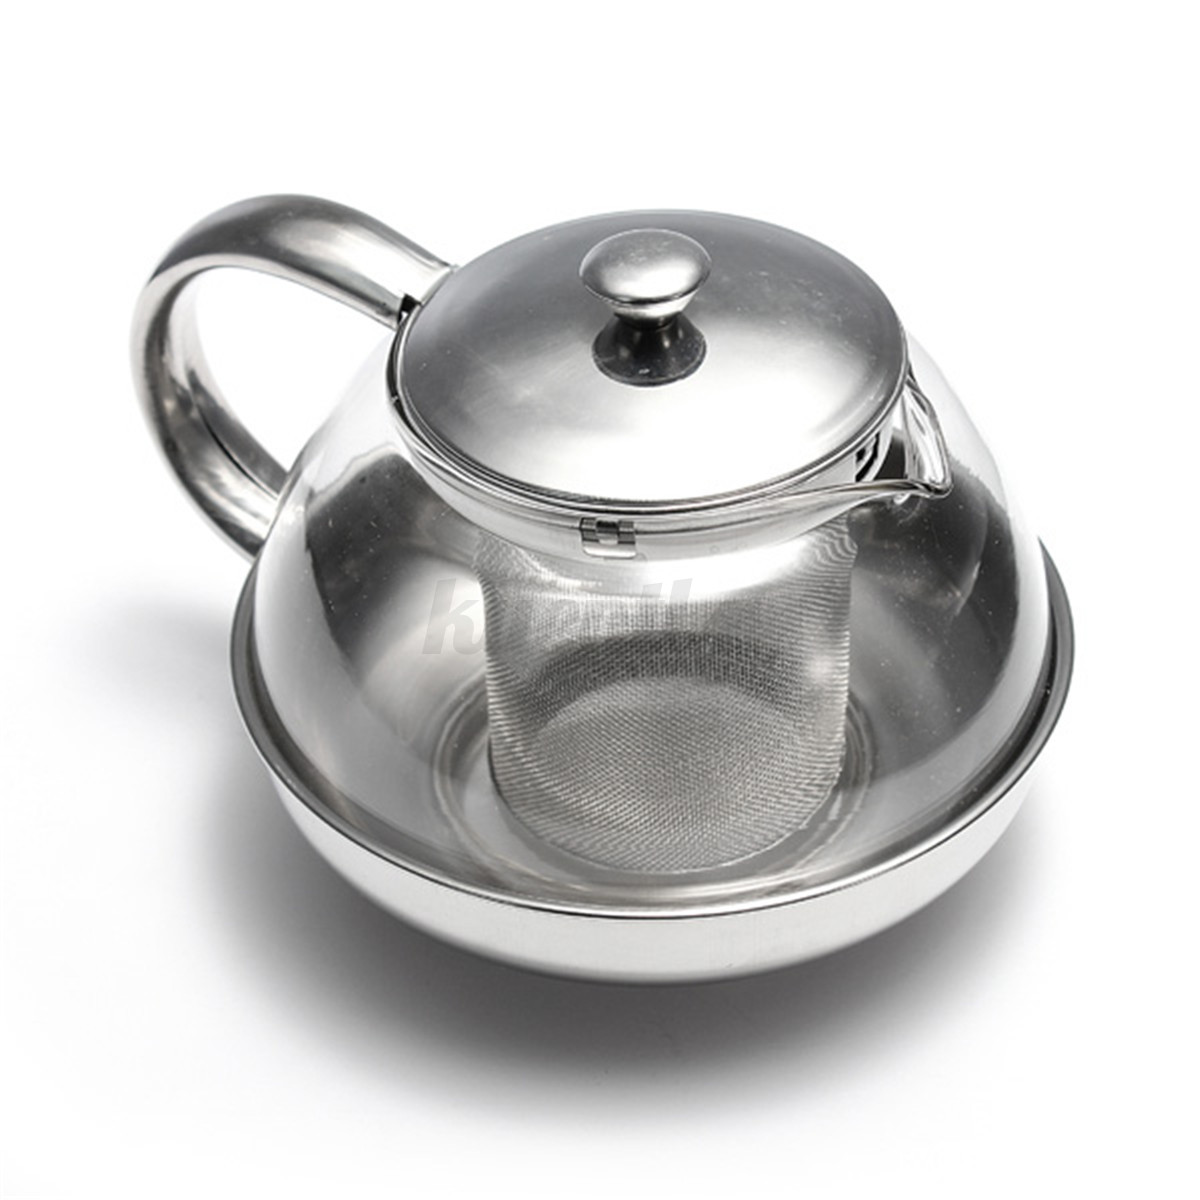 Tea Kettle With Strainer Stainless Steel Glass Teapot Tea Pot Herbal Tea And Leaf